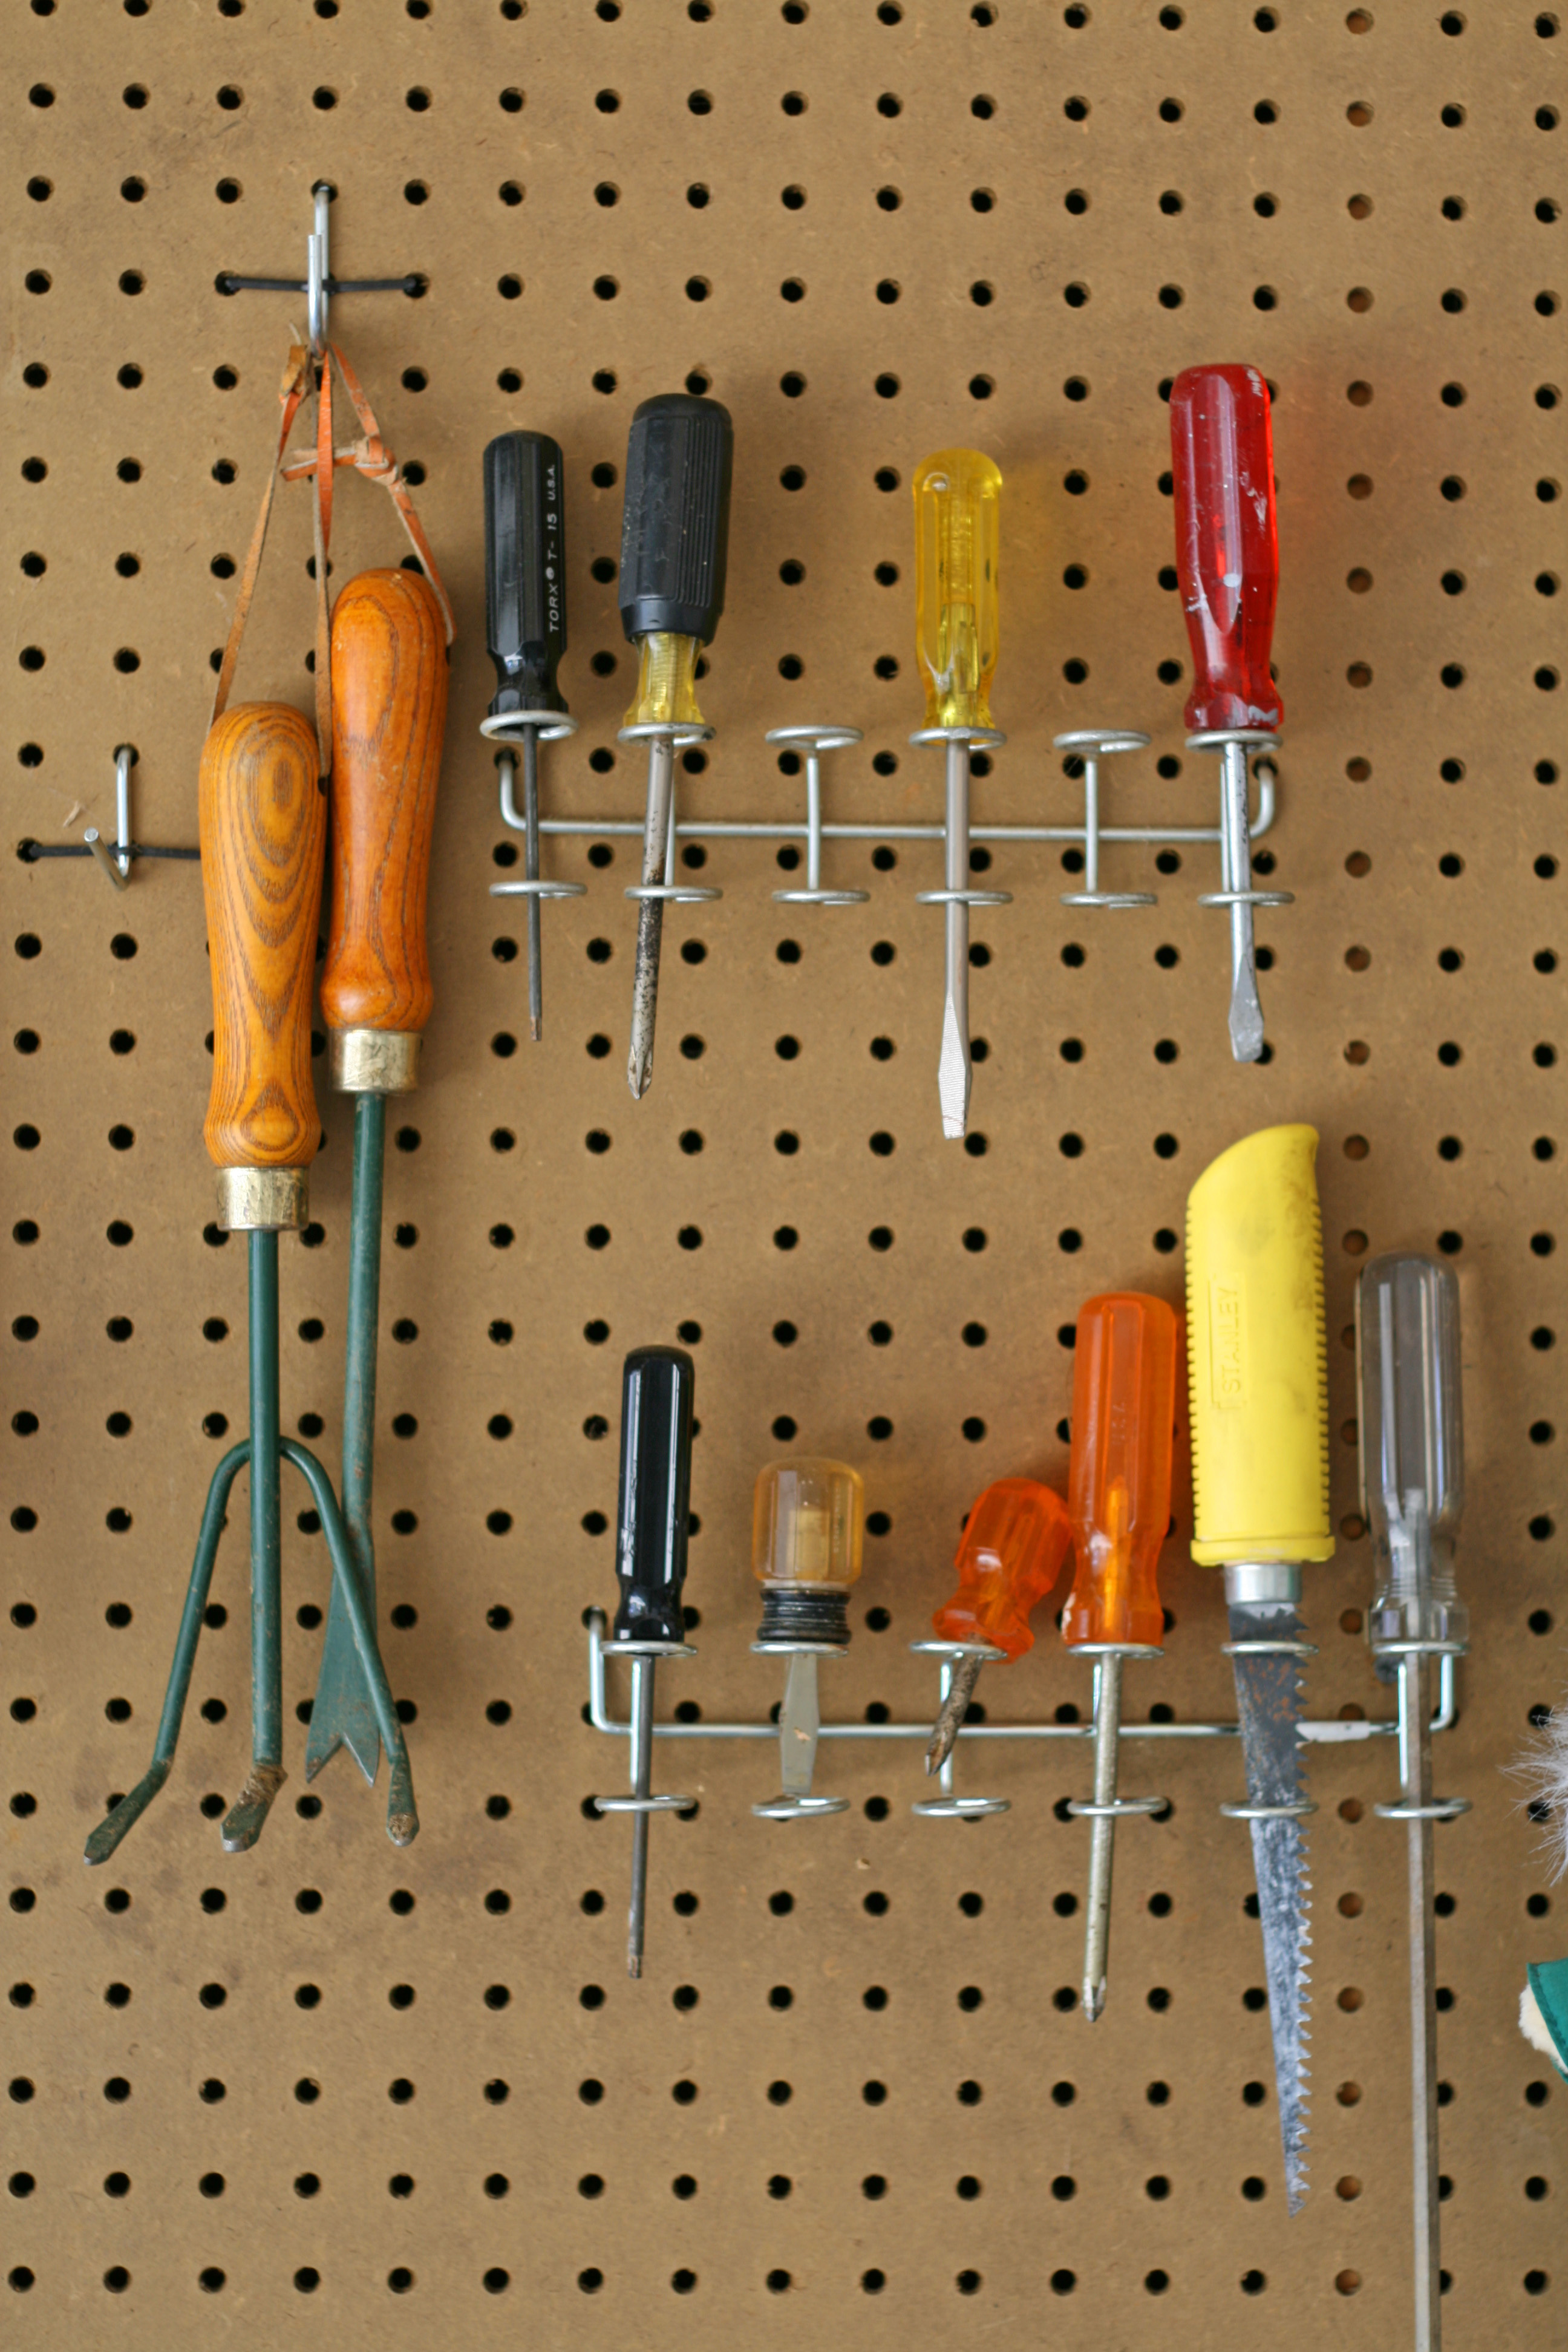 Tools hanging in the garage